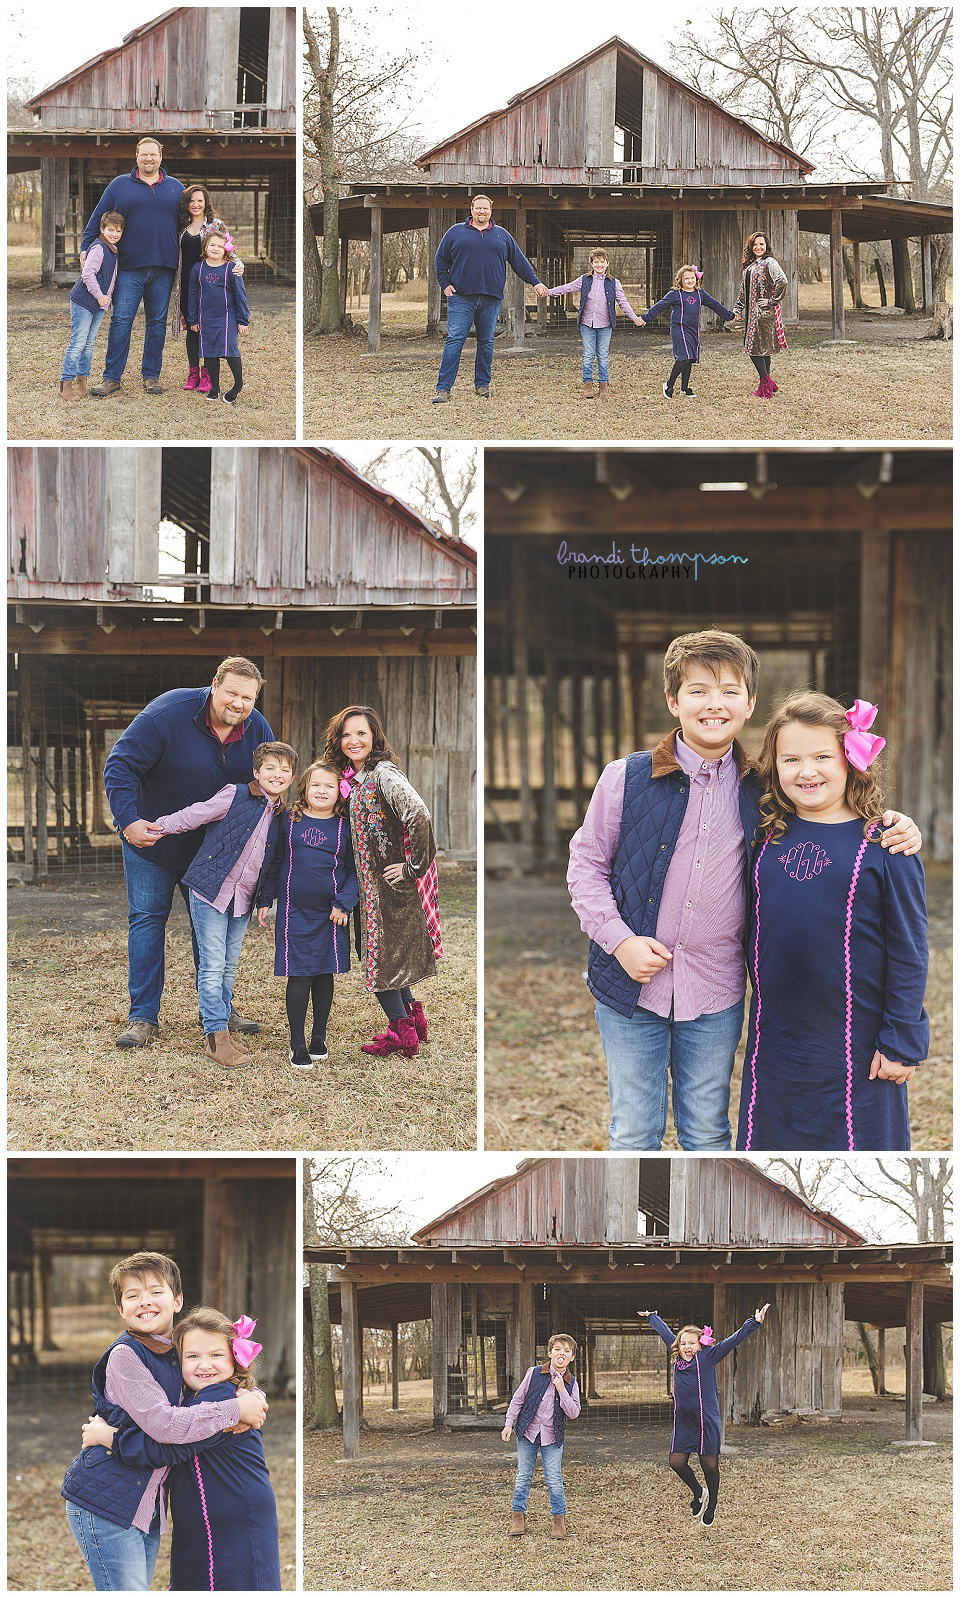 outdoor country family session with dad, mom, son and younger daughter